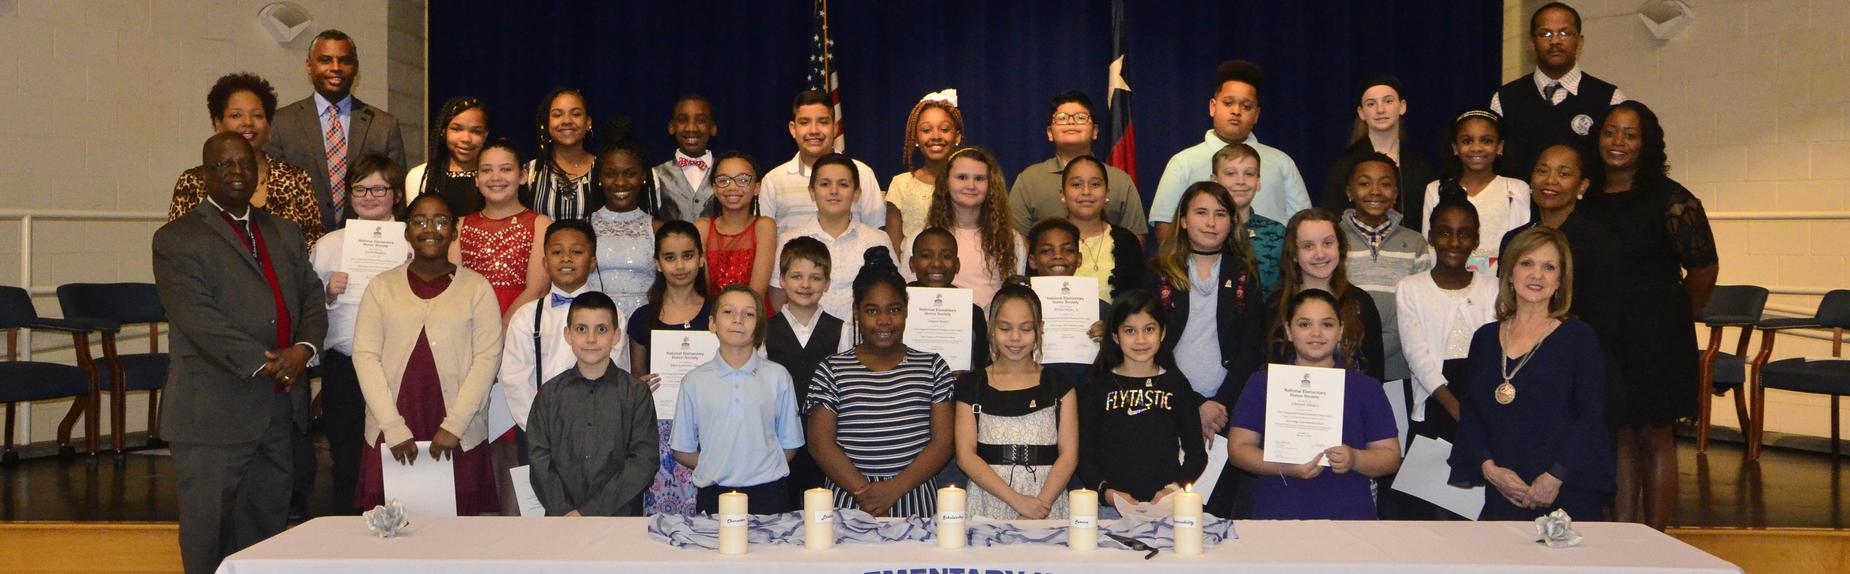 West Orange - Stark Elementary 2019 National Honor Society Members